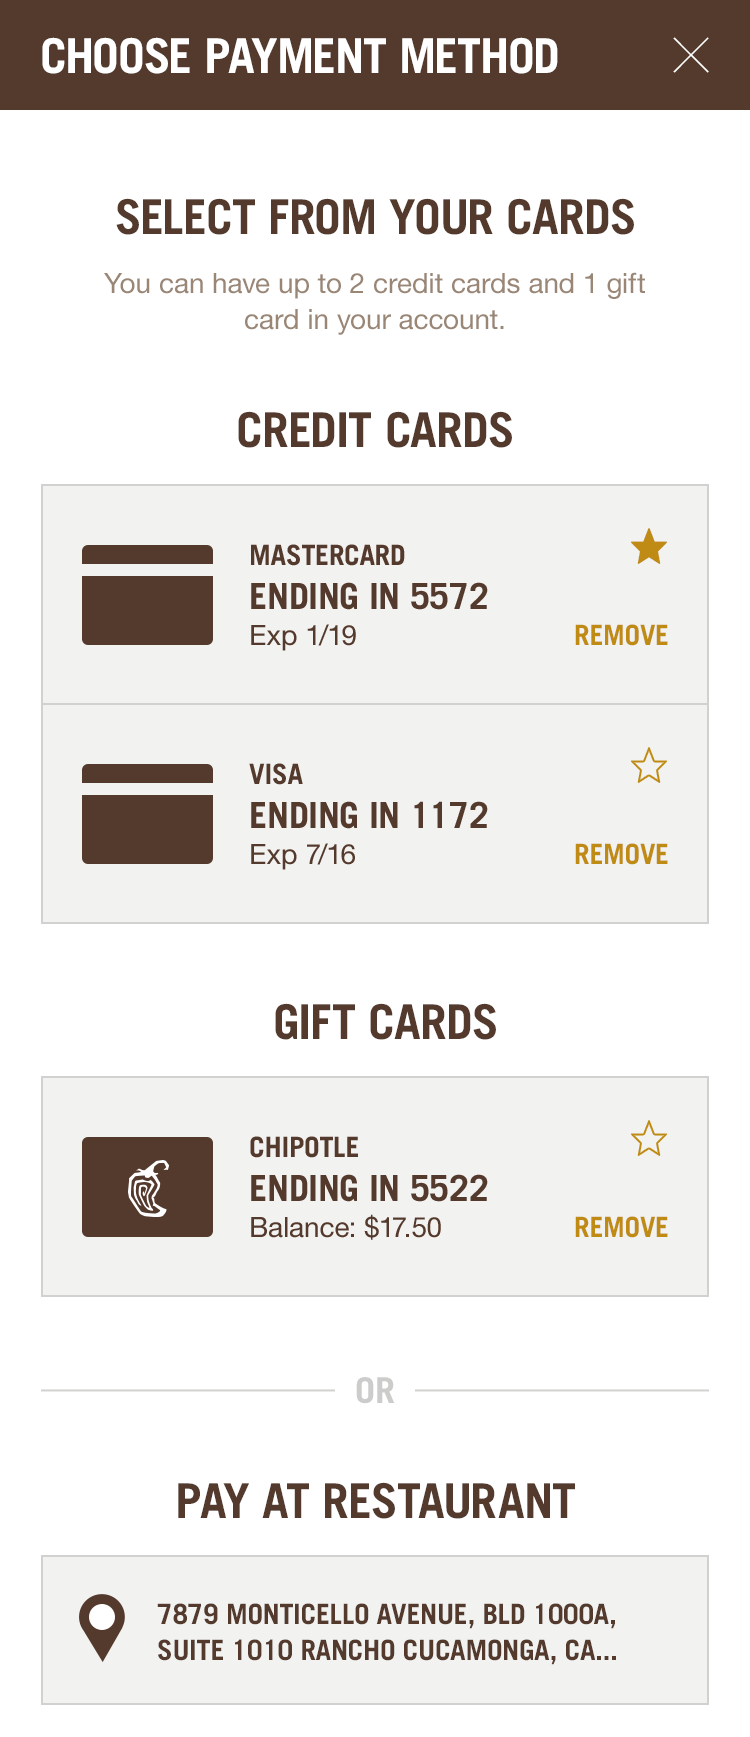 6b_ROO_GroupOrder_Mobile_Checkout_Choose_Payment_Method.png